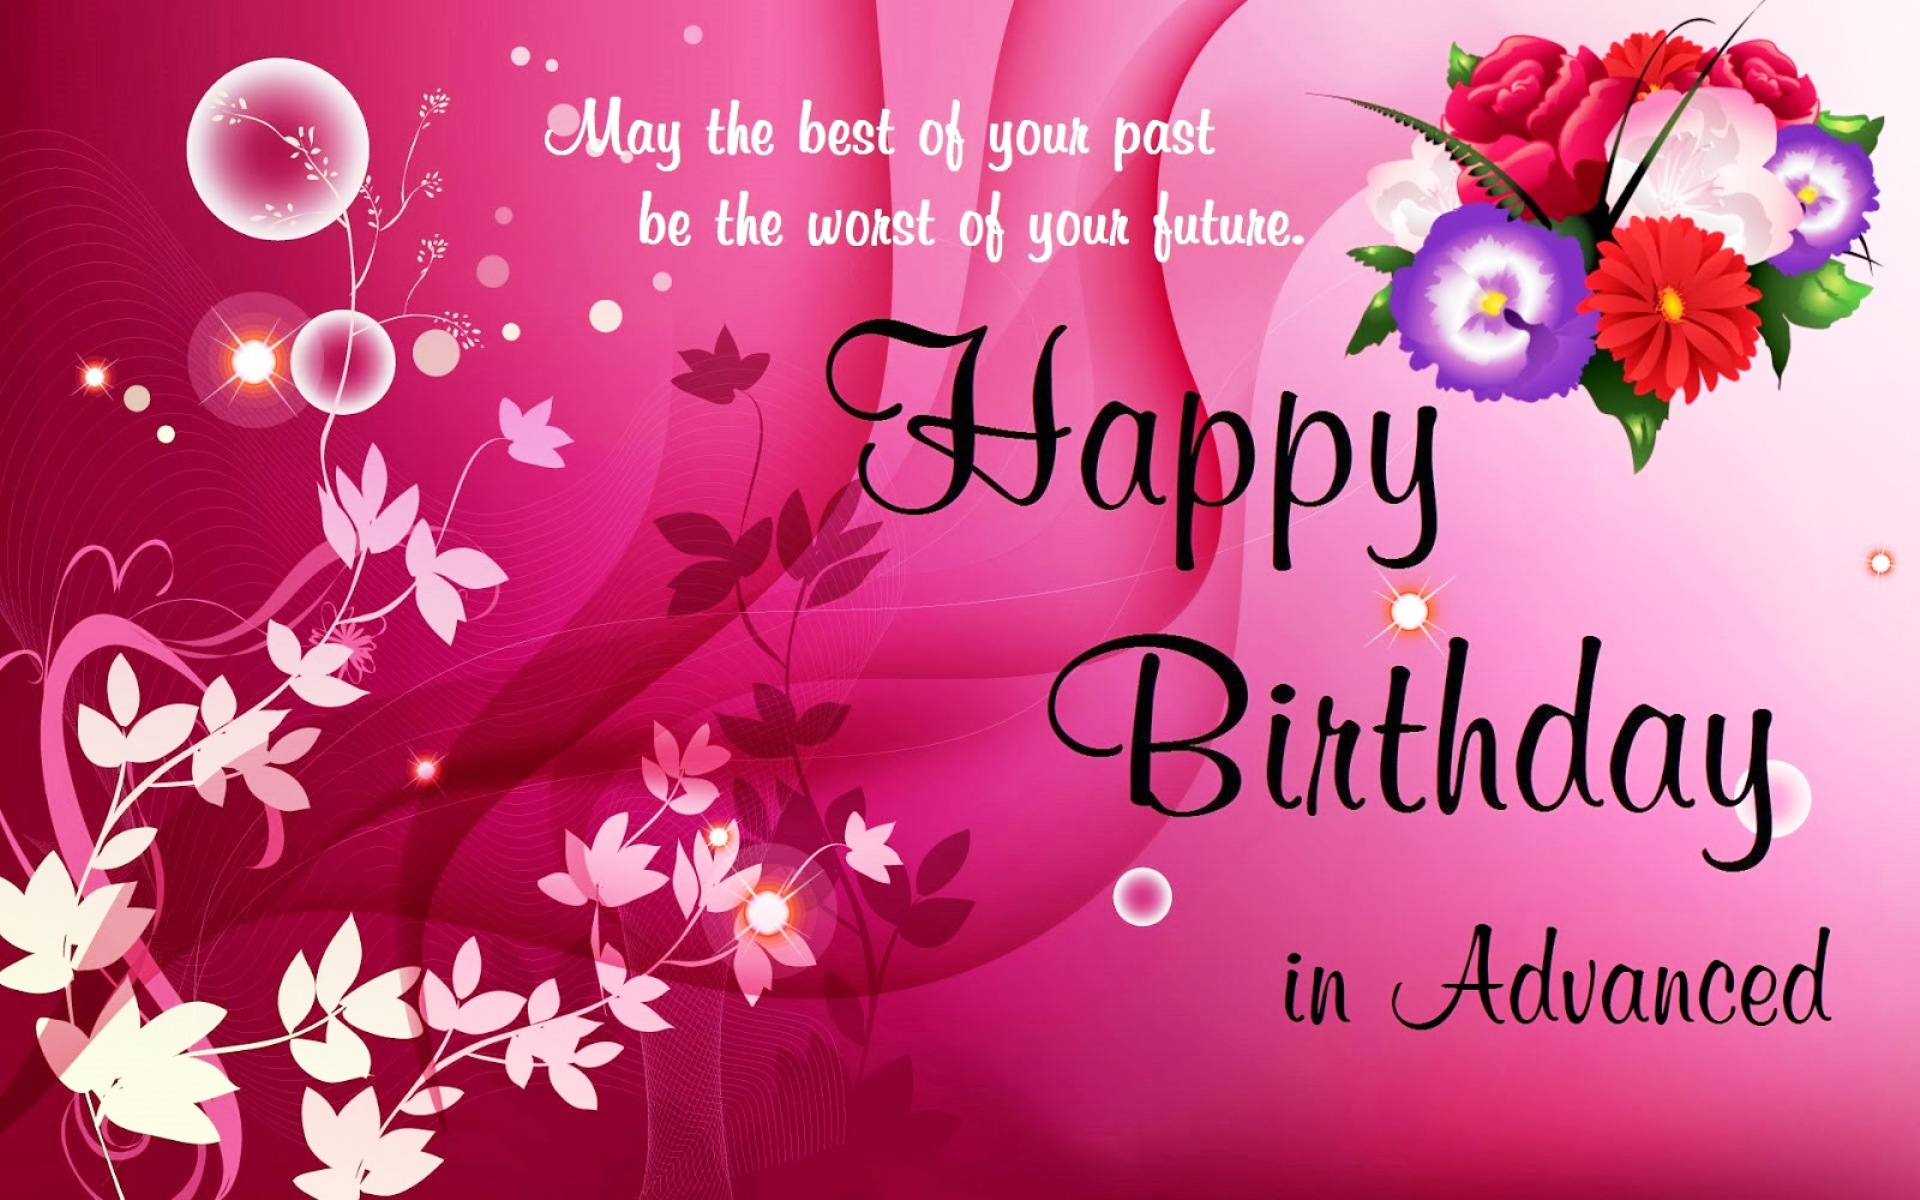 Download birthday greeting juvecenitdelacabrera download birthday greeting m4hsunfo